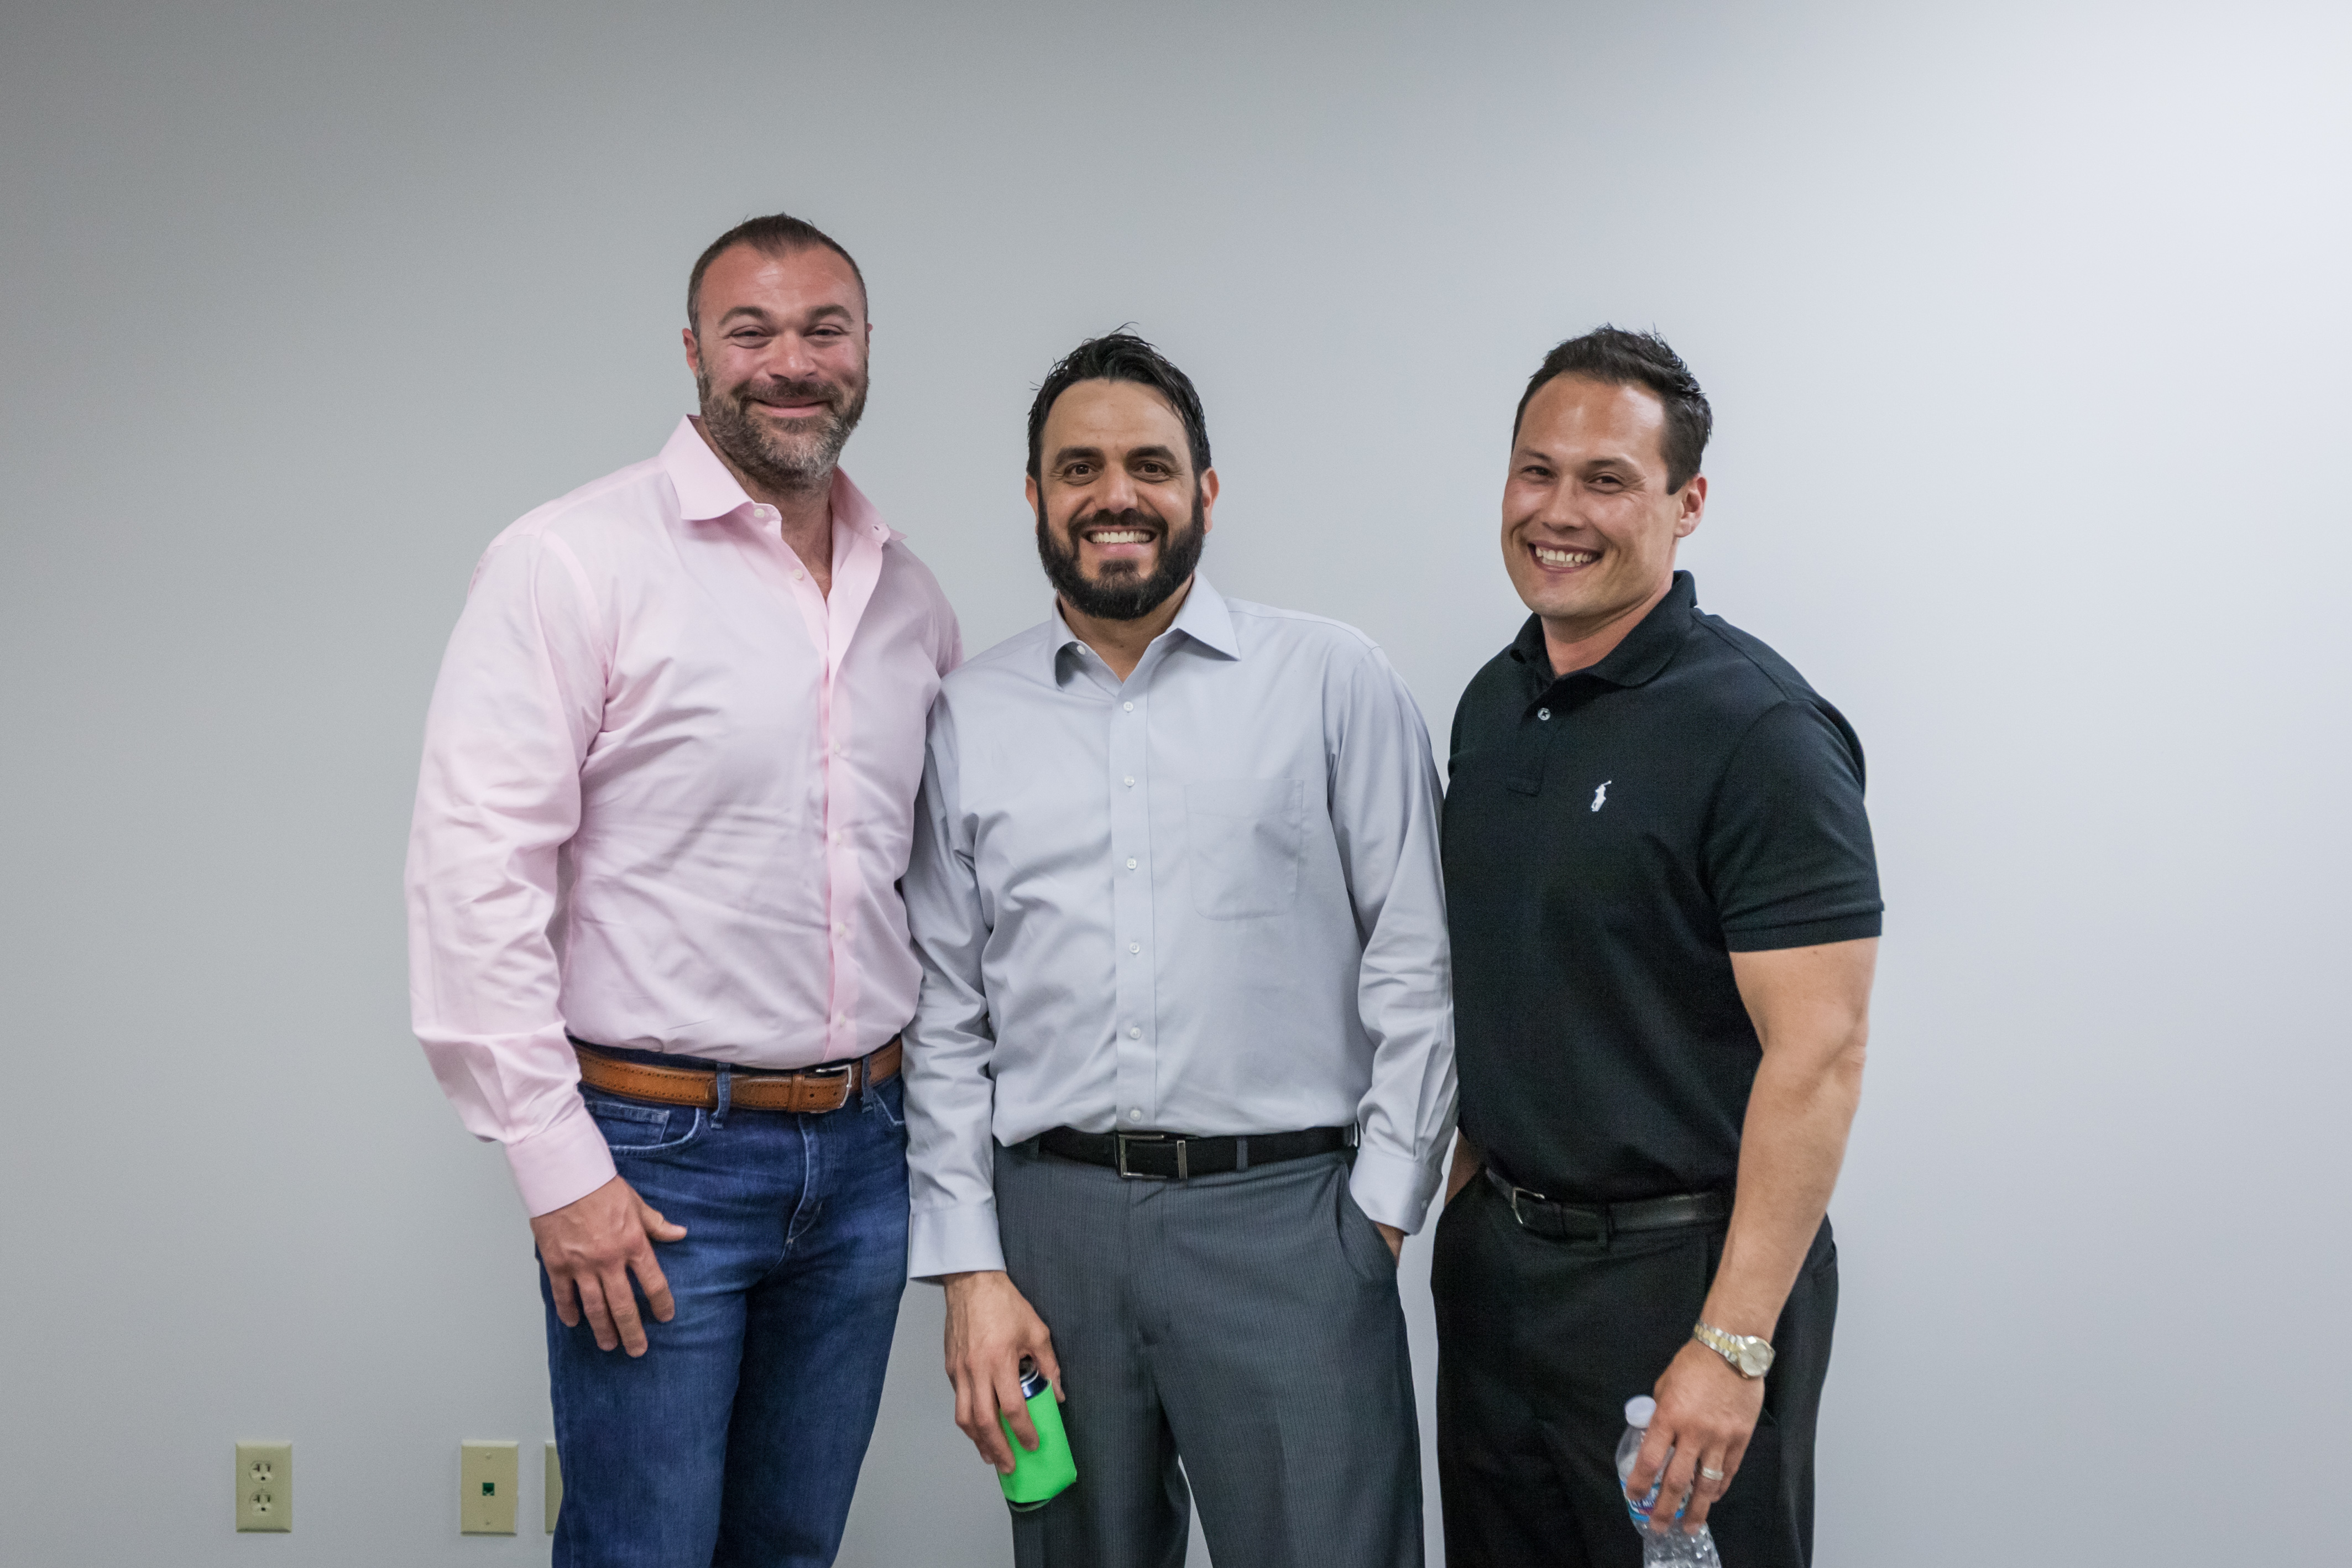 Three men standing side by side smiling for picture